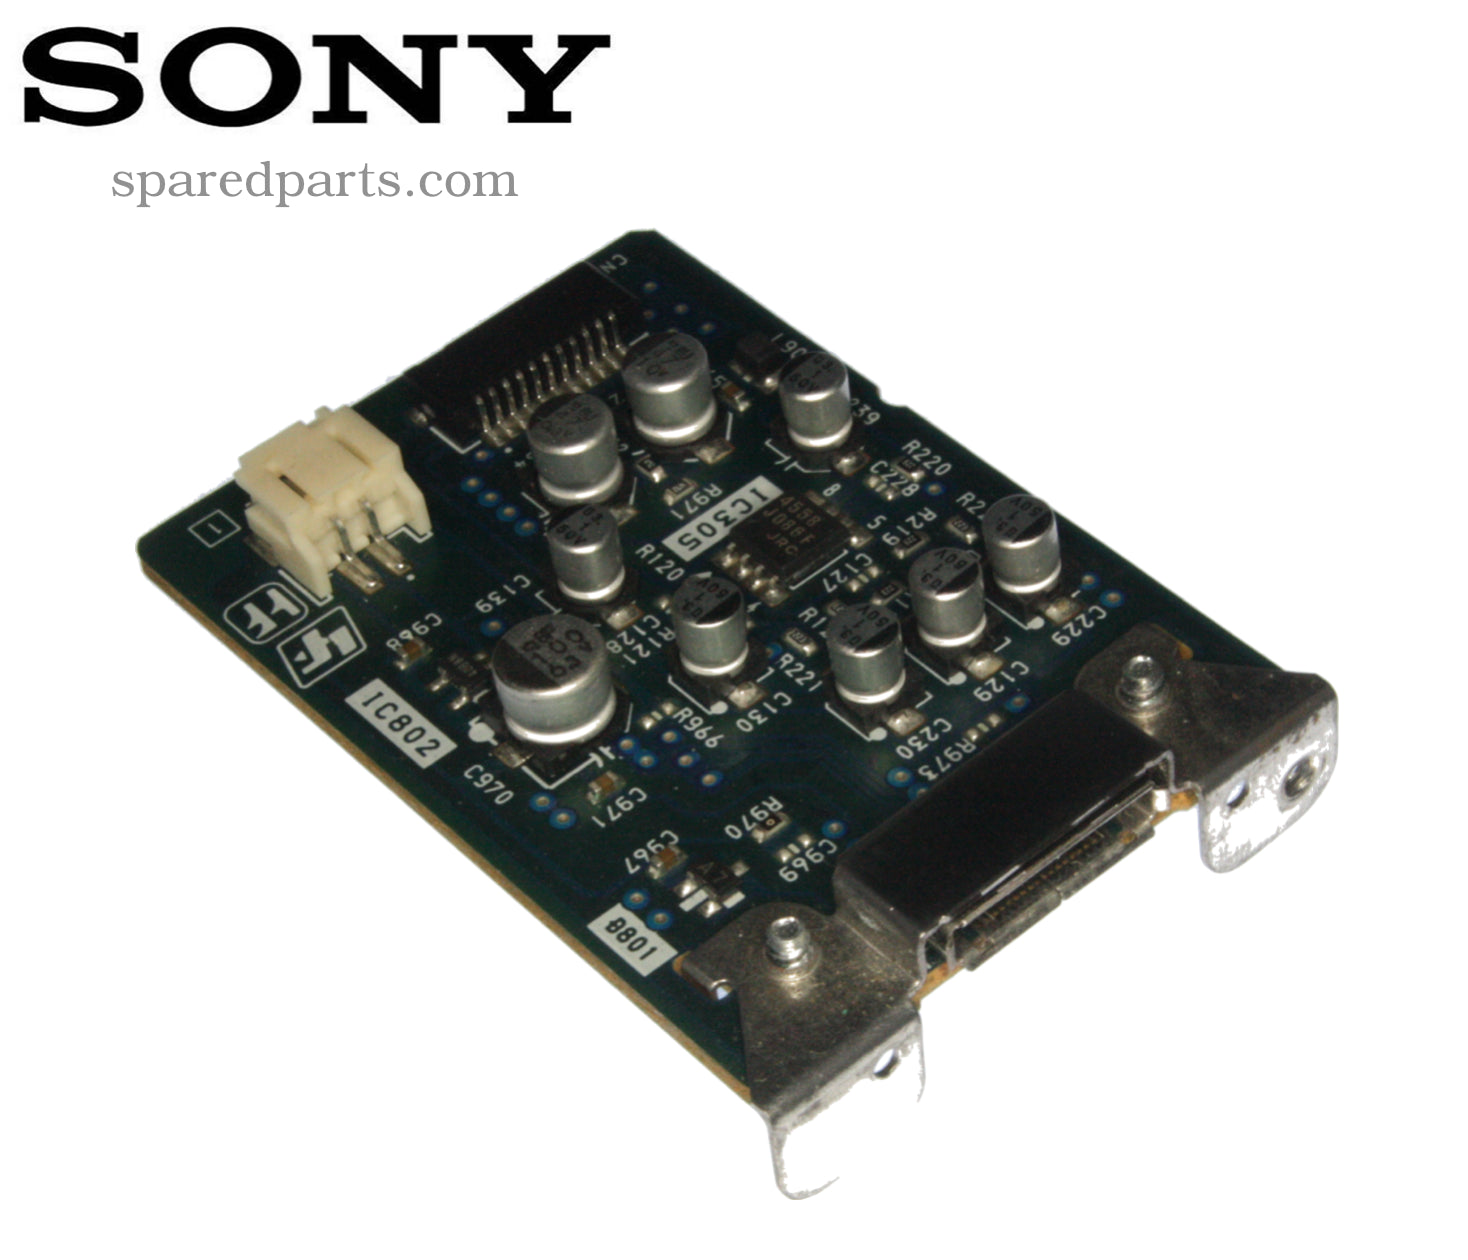 Https Daily Products 00079c 17pw25 4 Circuit Diagram Sony Dmp Mounted Pc Board A1498593a 187637711v1529592863